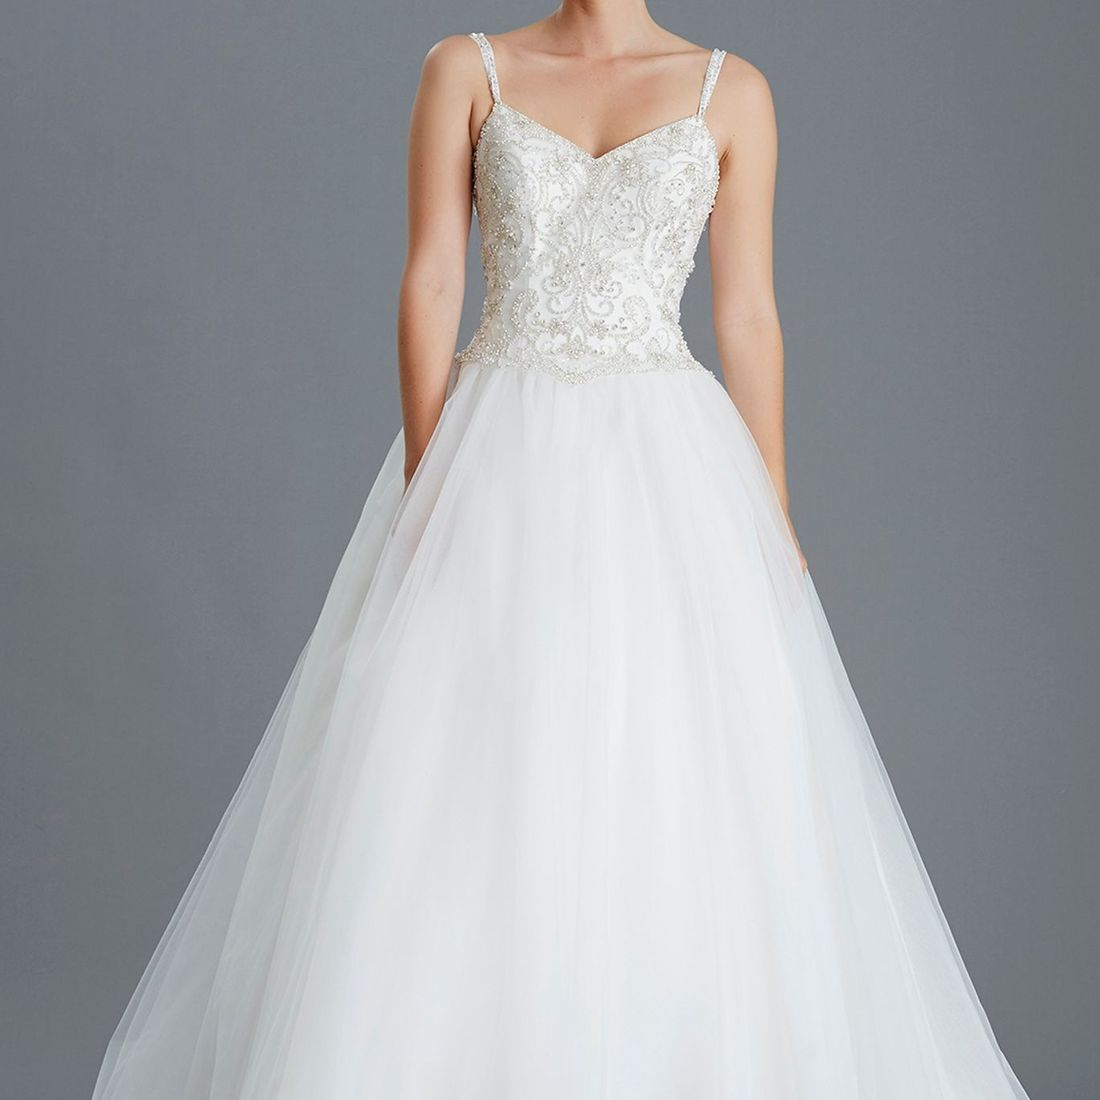 Princess ballgown wedding dress